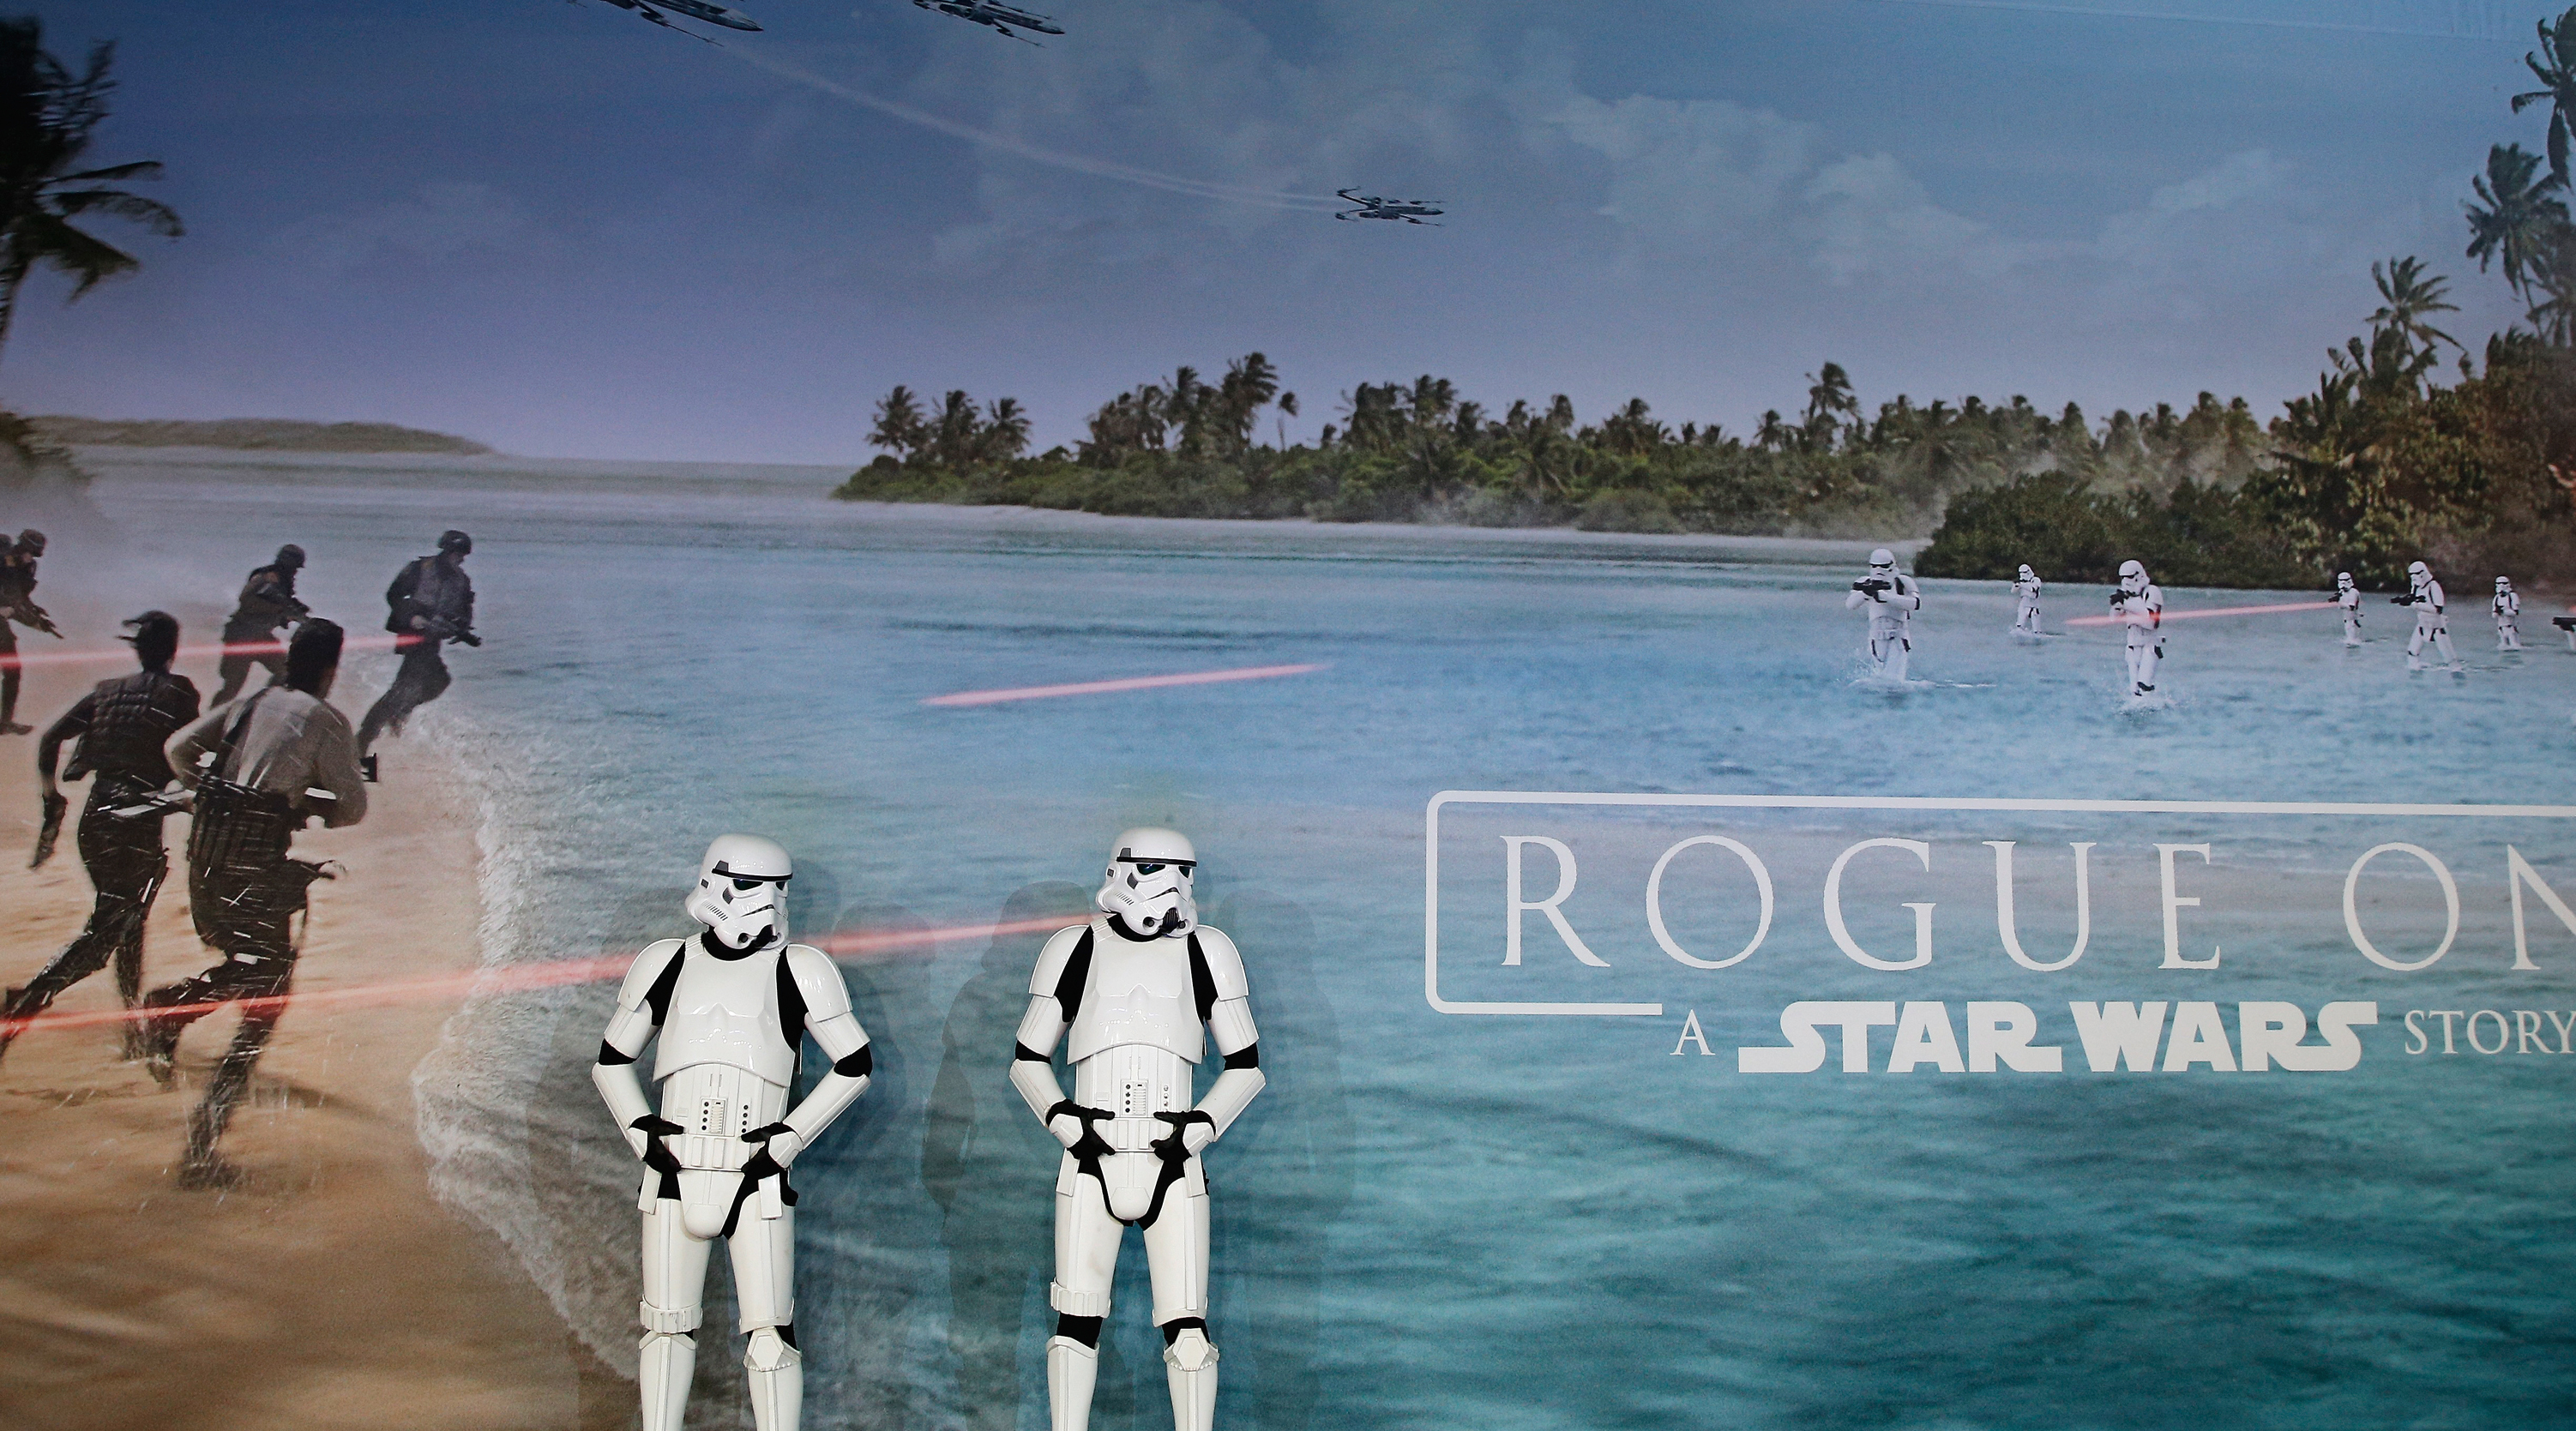 European Premiere of Star Wars Rogue One